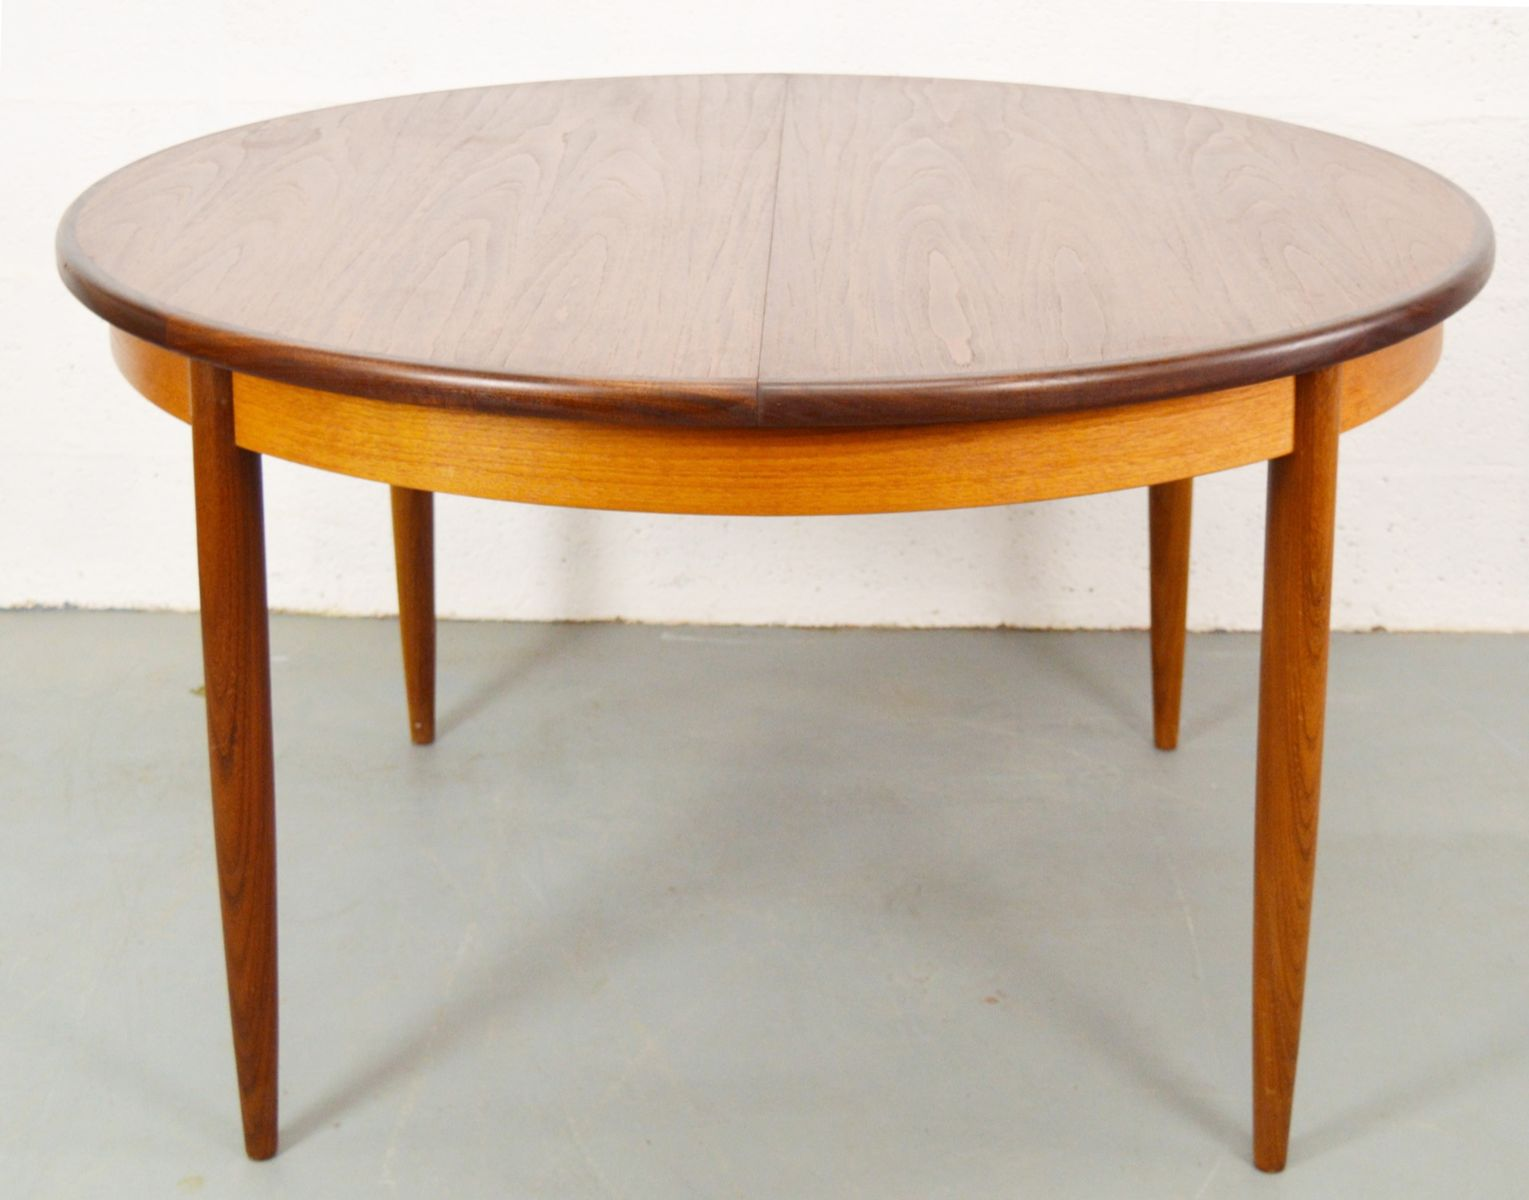 g plan fresco dining table